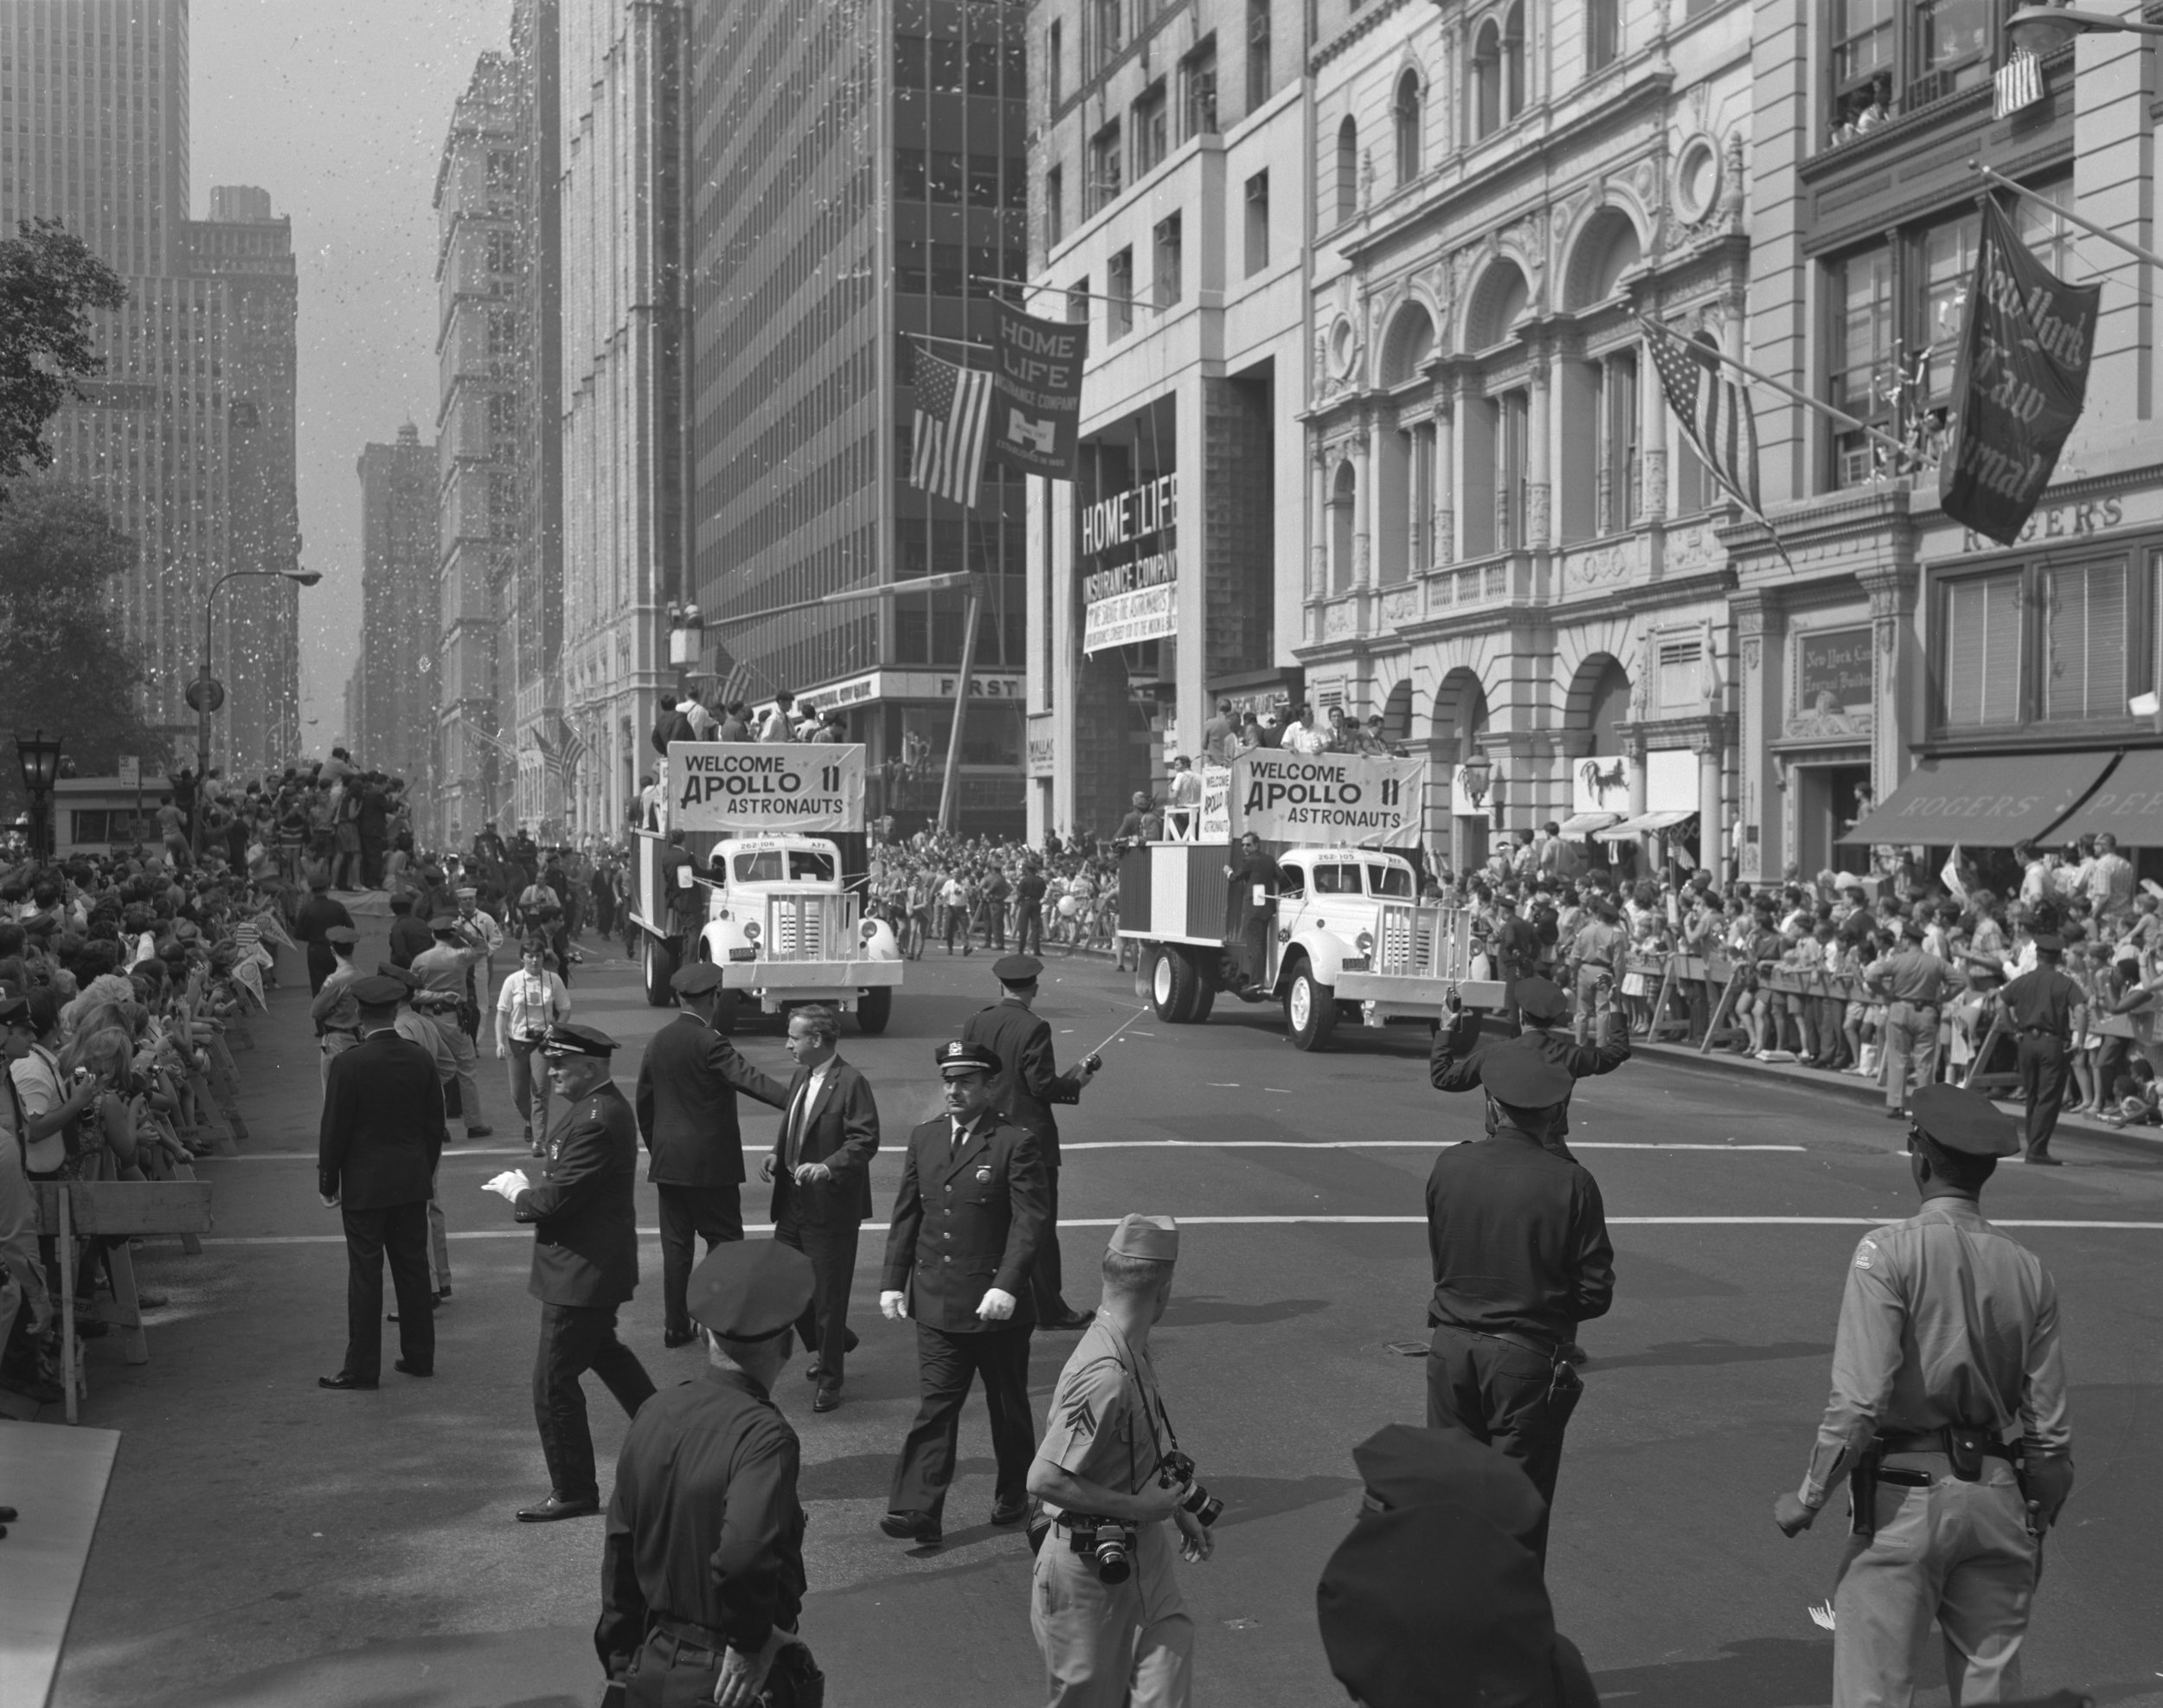 Press trucks lead the Apollo 11 Astronaut motorcade along Broadway approaching City Hall Park, August 13, 1969. NYPD Collection, NYC Municipal Archives.